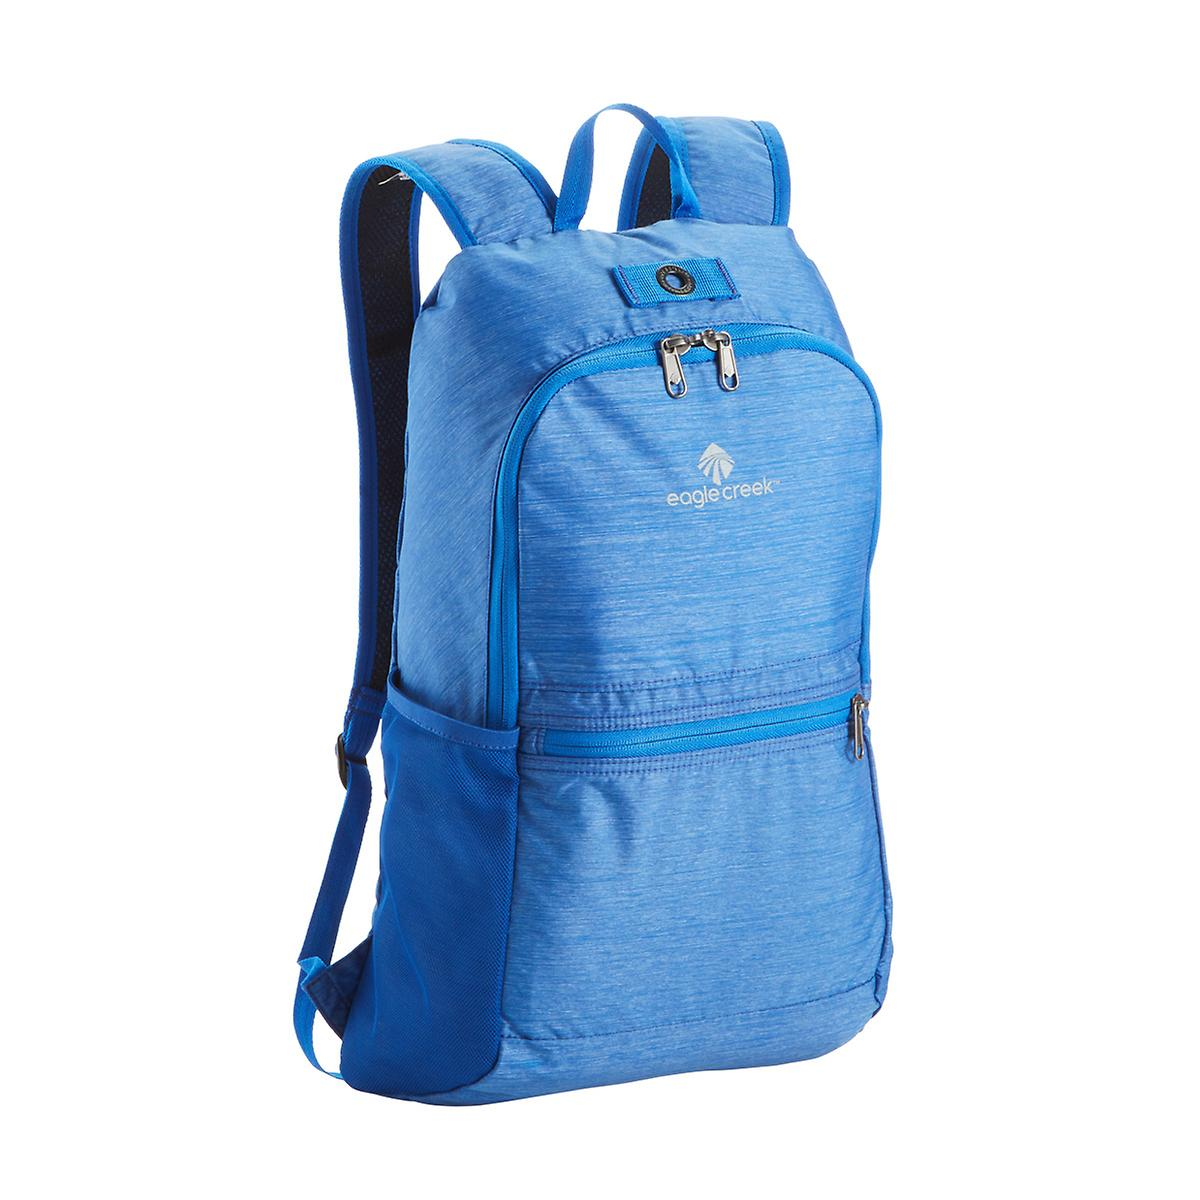 Eagle Creek Heathered Blue Packable Daypack